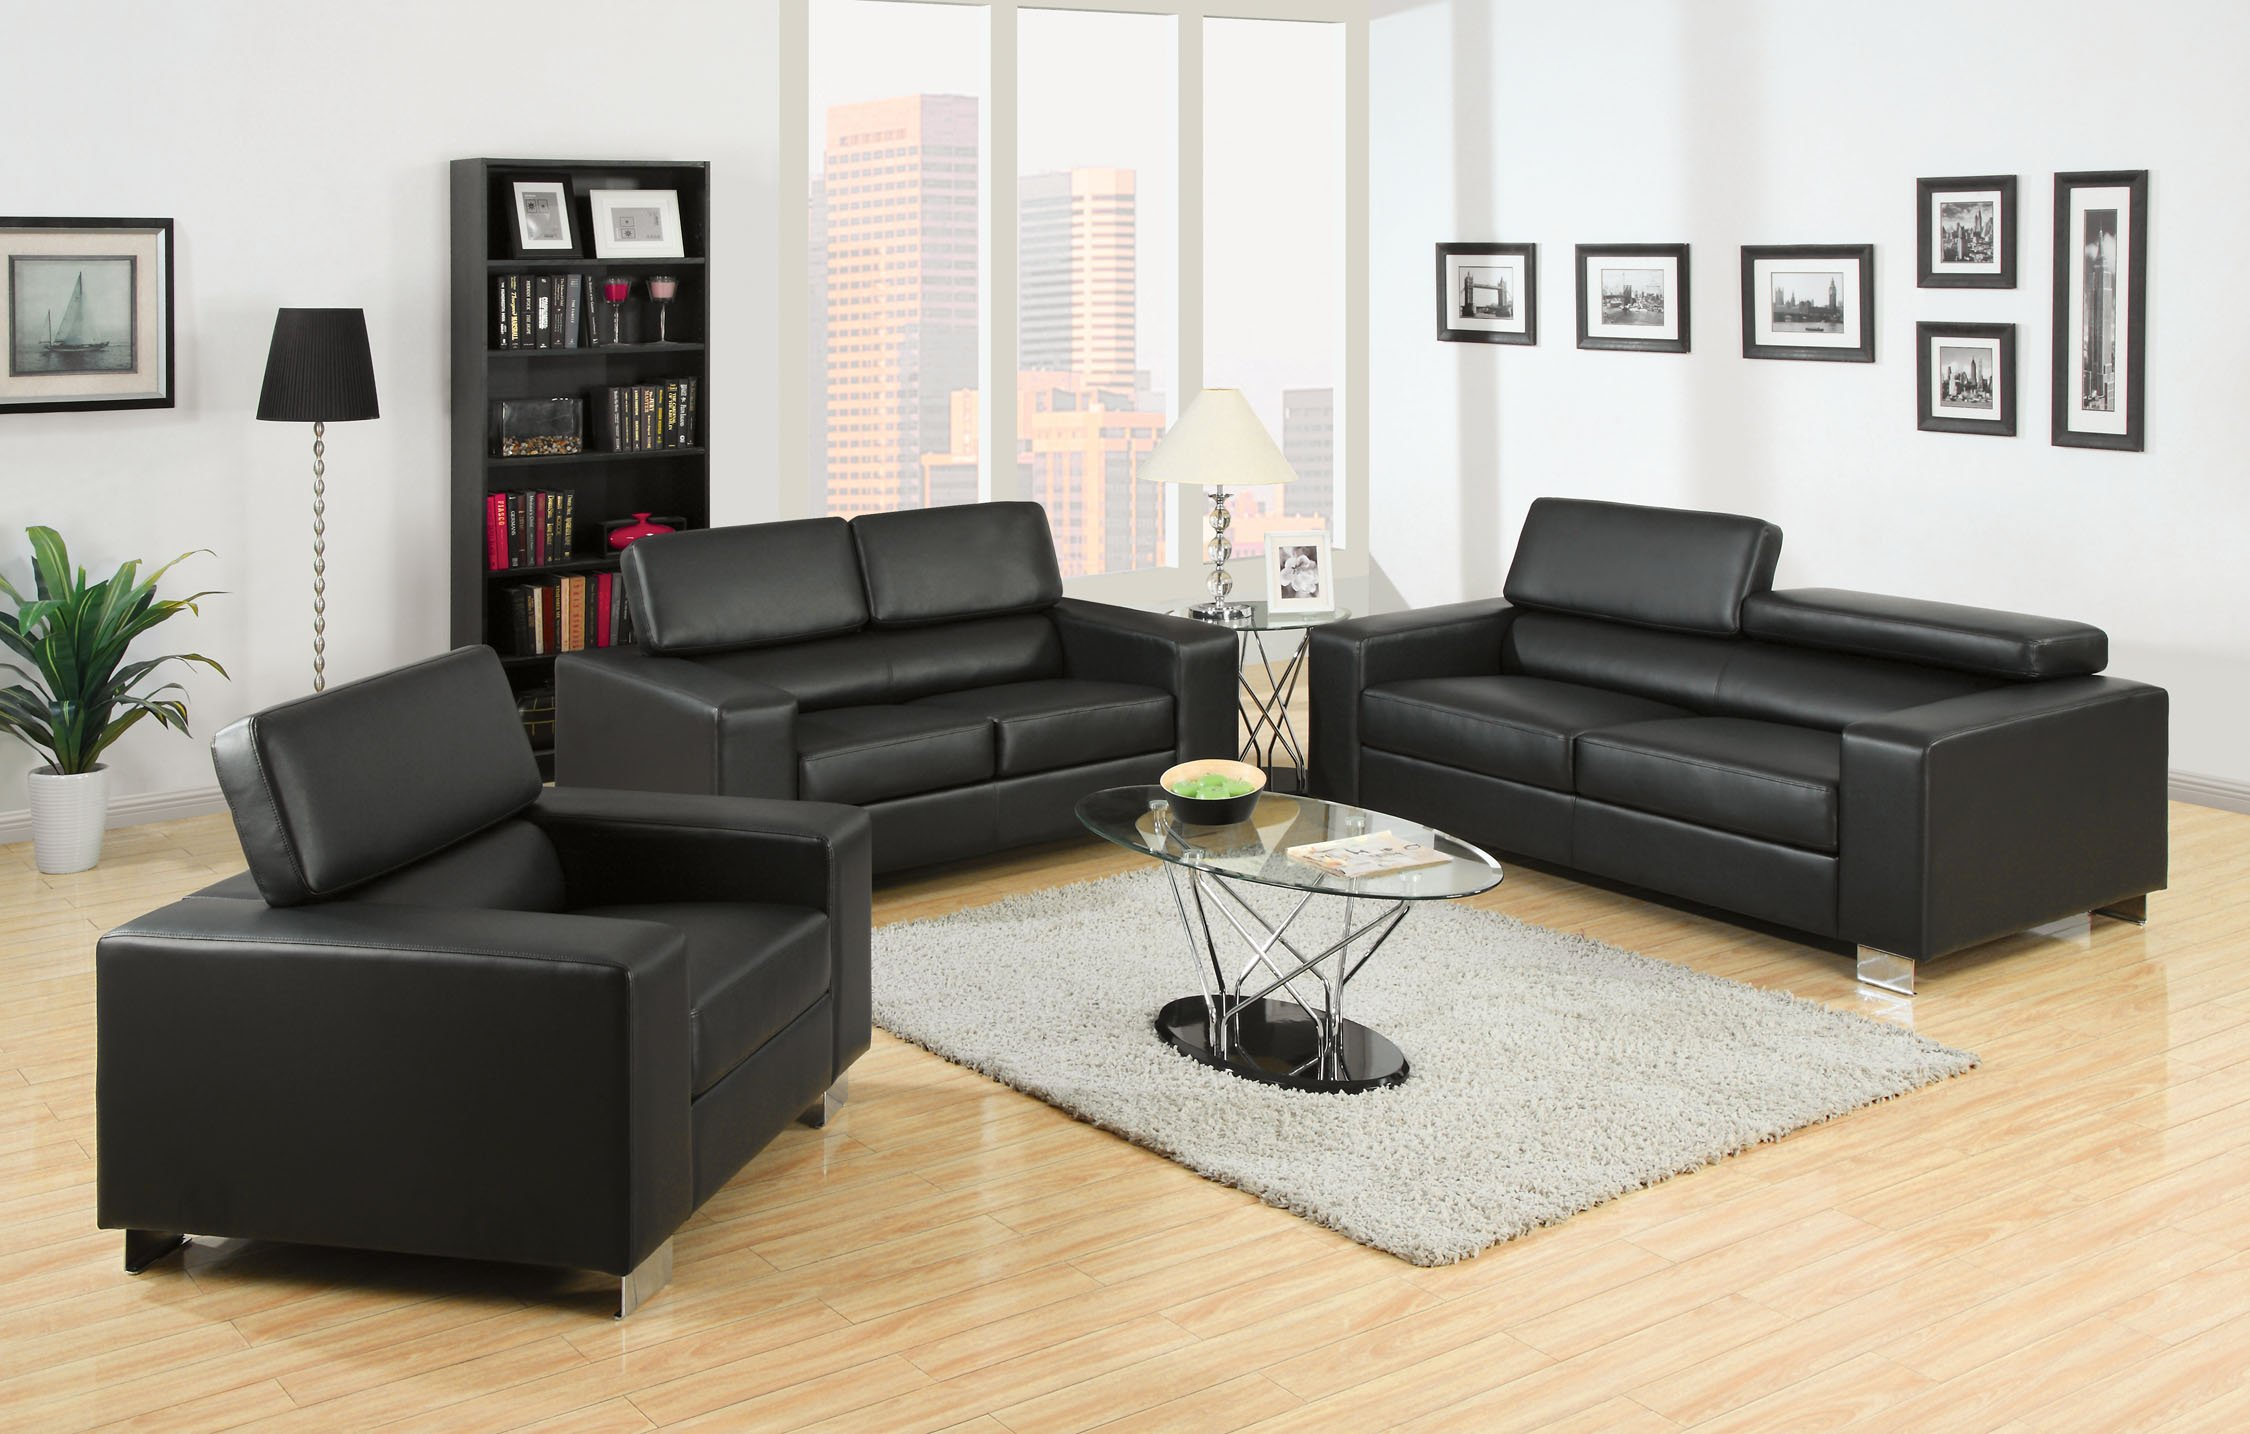 Furniture of America Bloomsbury 2-Piece Bonded Leather Match Sofa Set